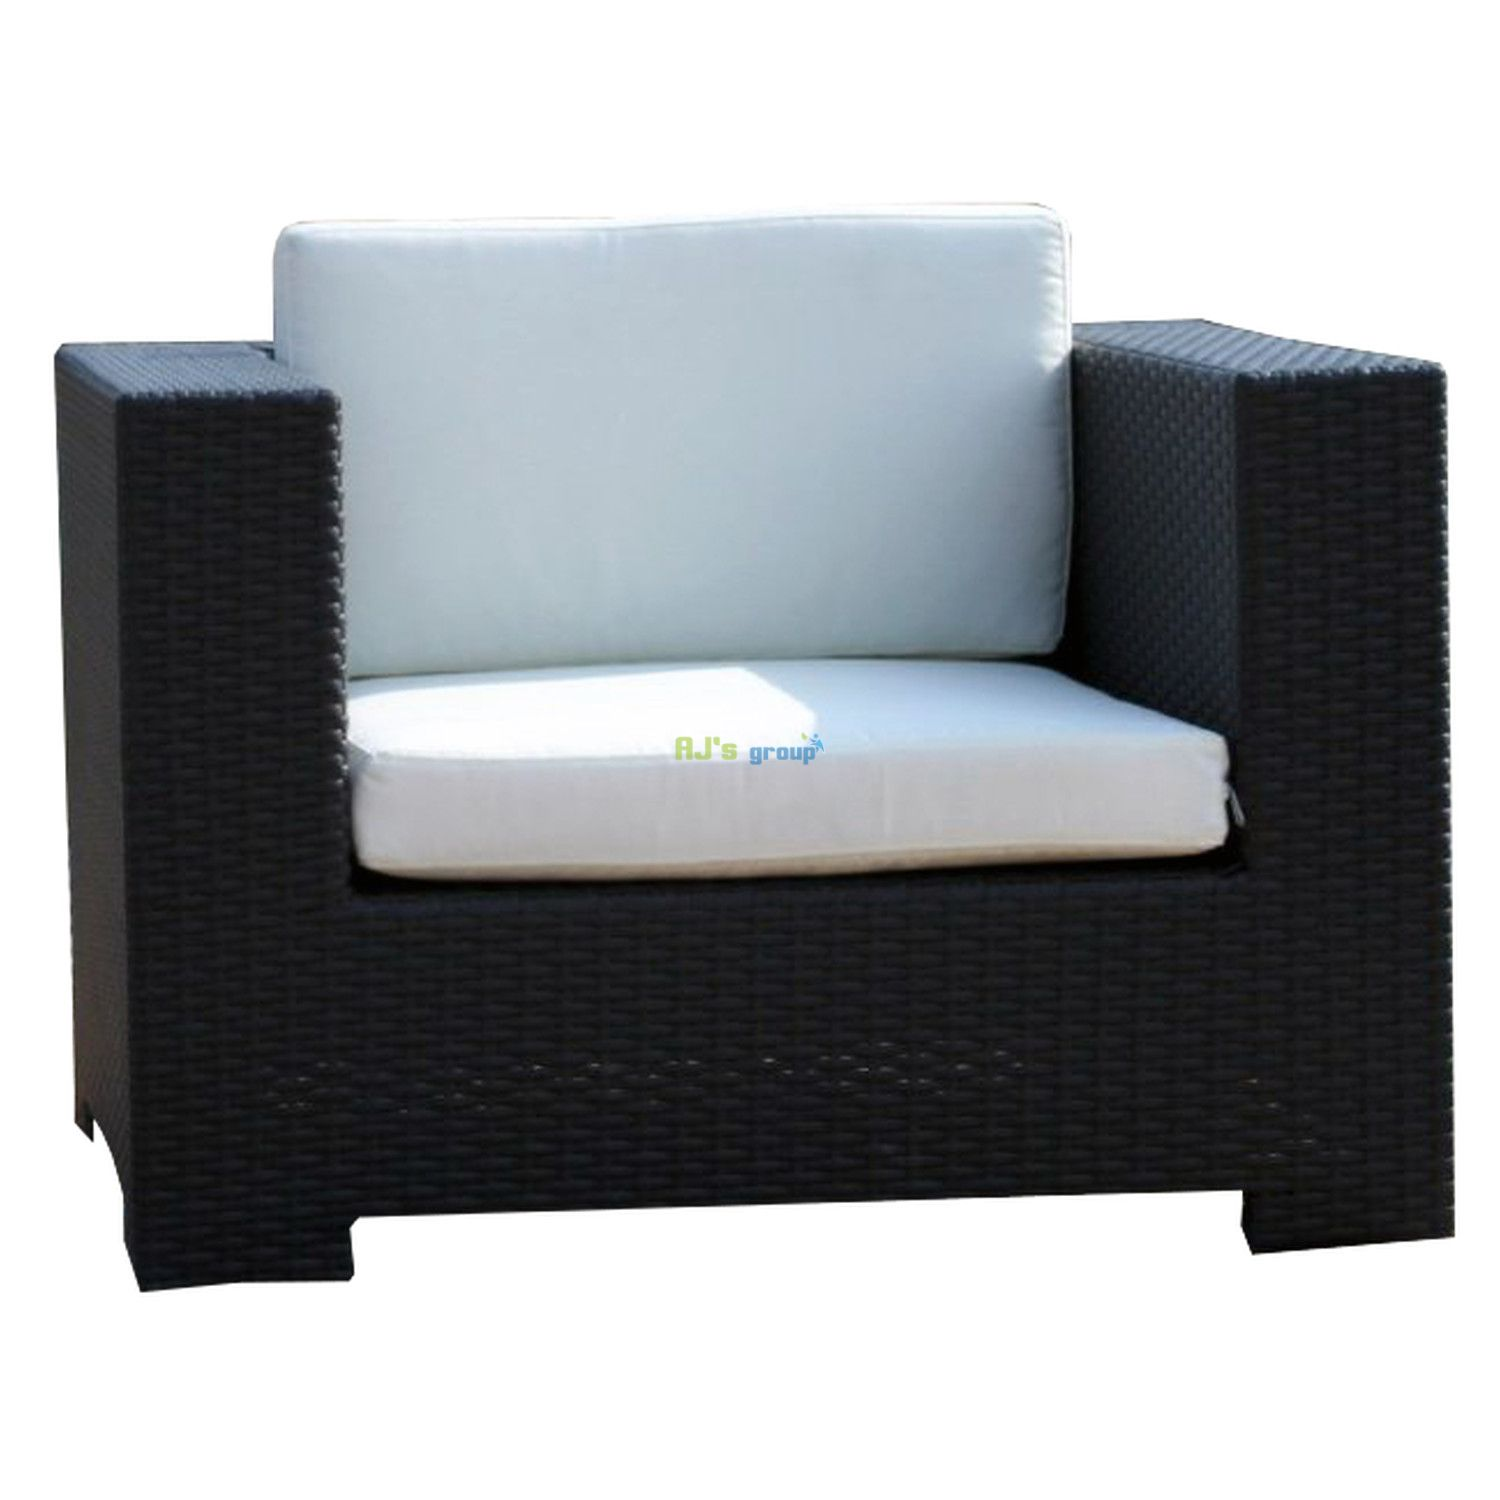 poly rattan gartenm bel georgia alu garnitur lounge garten sitzg. Black Bedroom Furniture Sets. Home Design Ideas